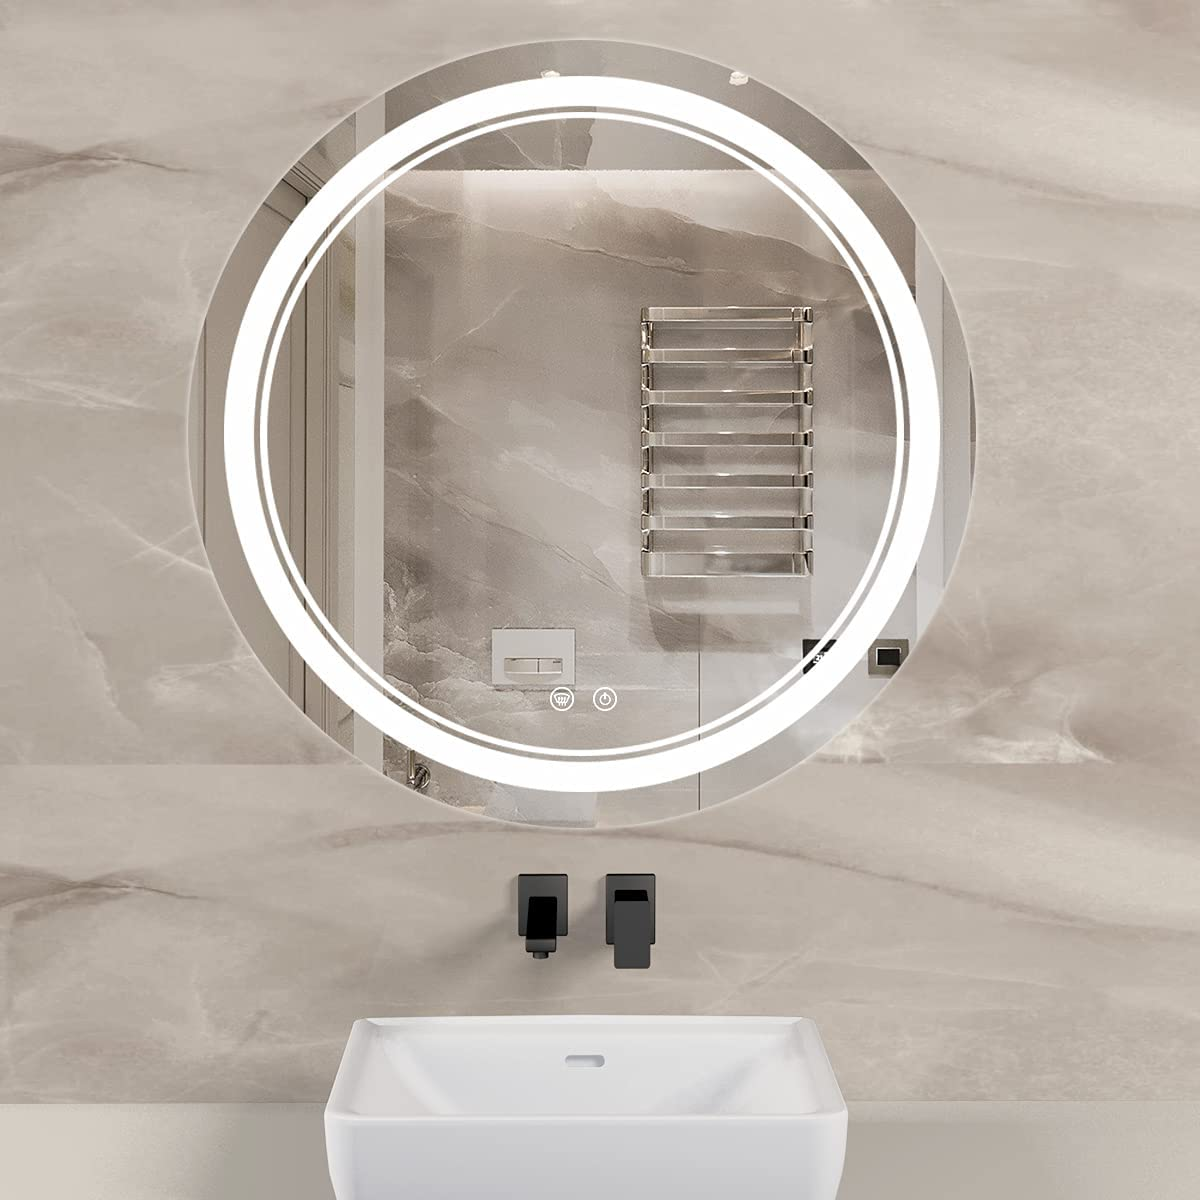 TETOTE 24 Inch LED Bathroom Mirror Dimmable Quality inspection Anti-Fo Direct stock discount Vanity Round